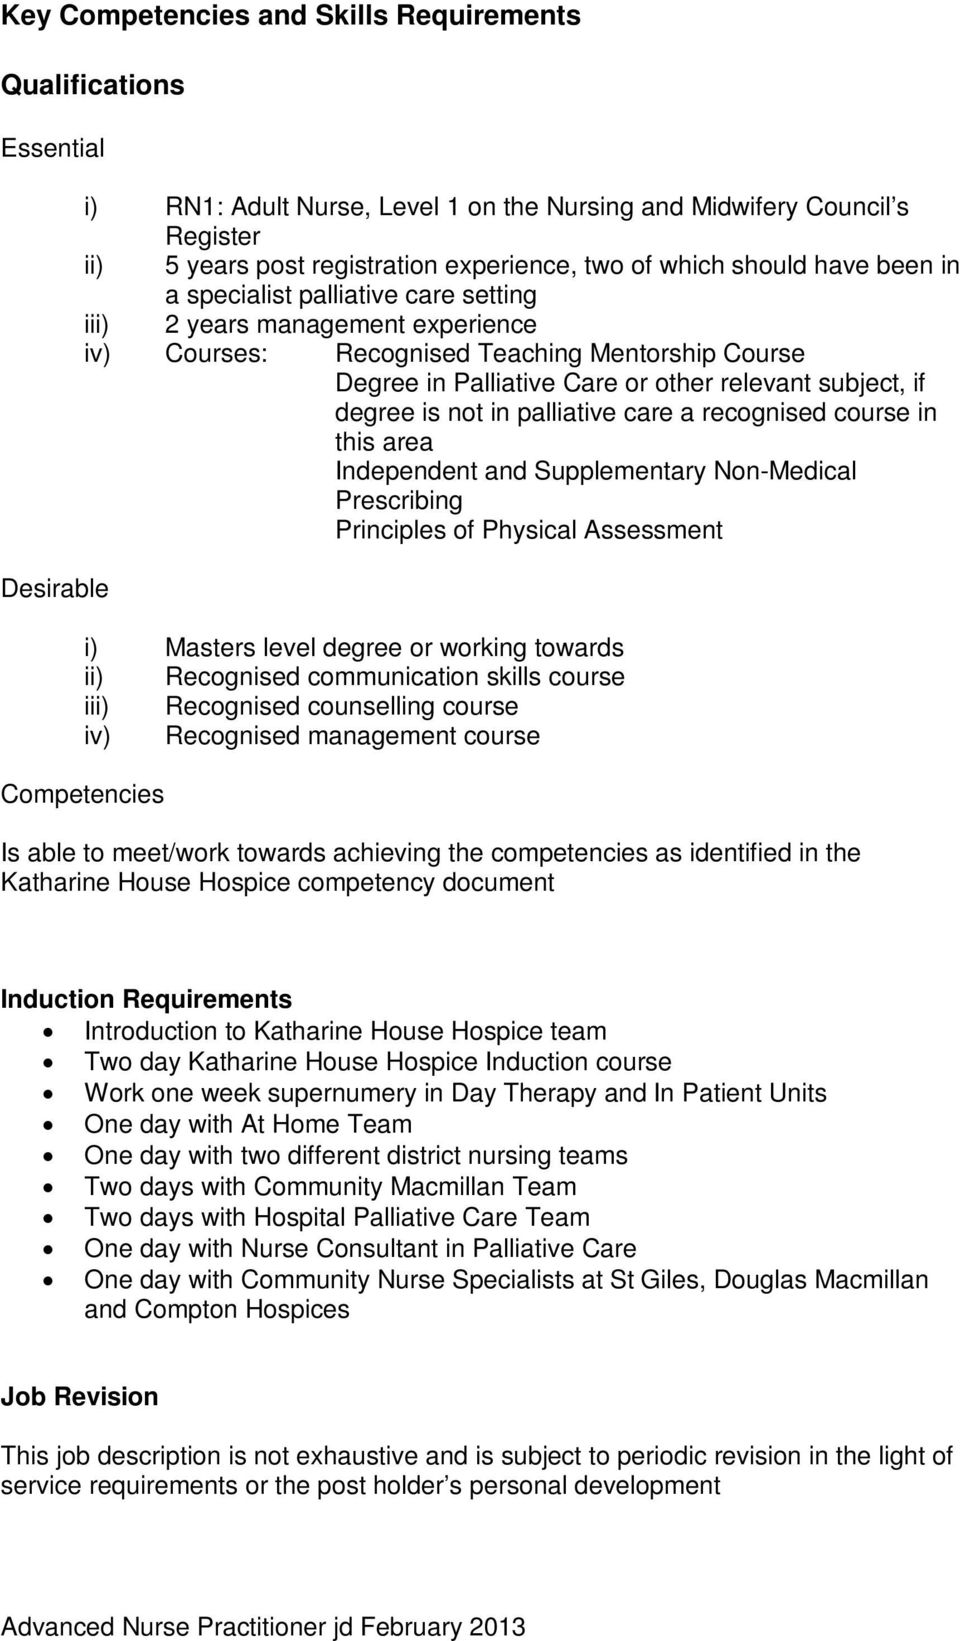 not in palliative care a recognised course in this area Independent and Supplementary Non-Medical Prescribing Principles of Physical Assessment i) Masters level degree or working towards ii)